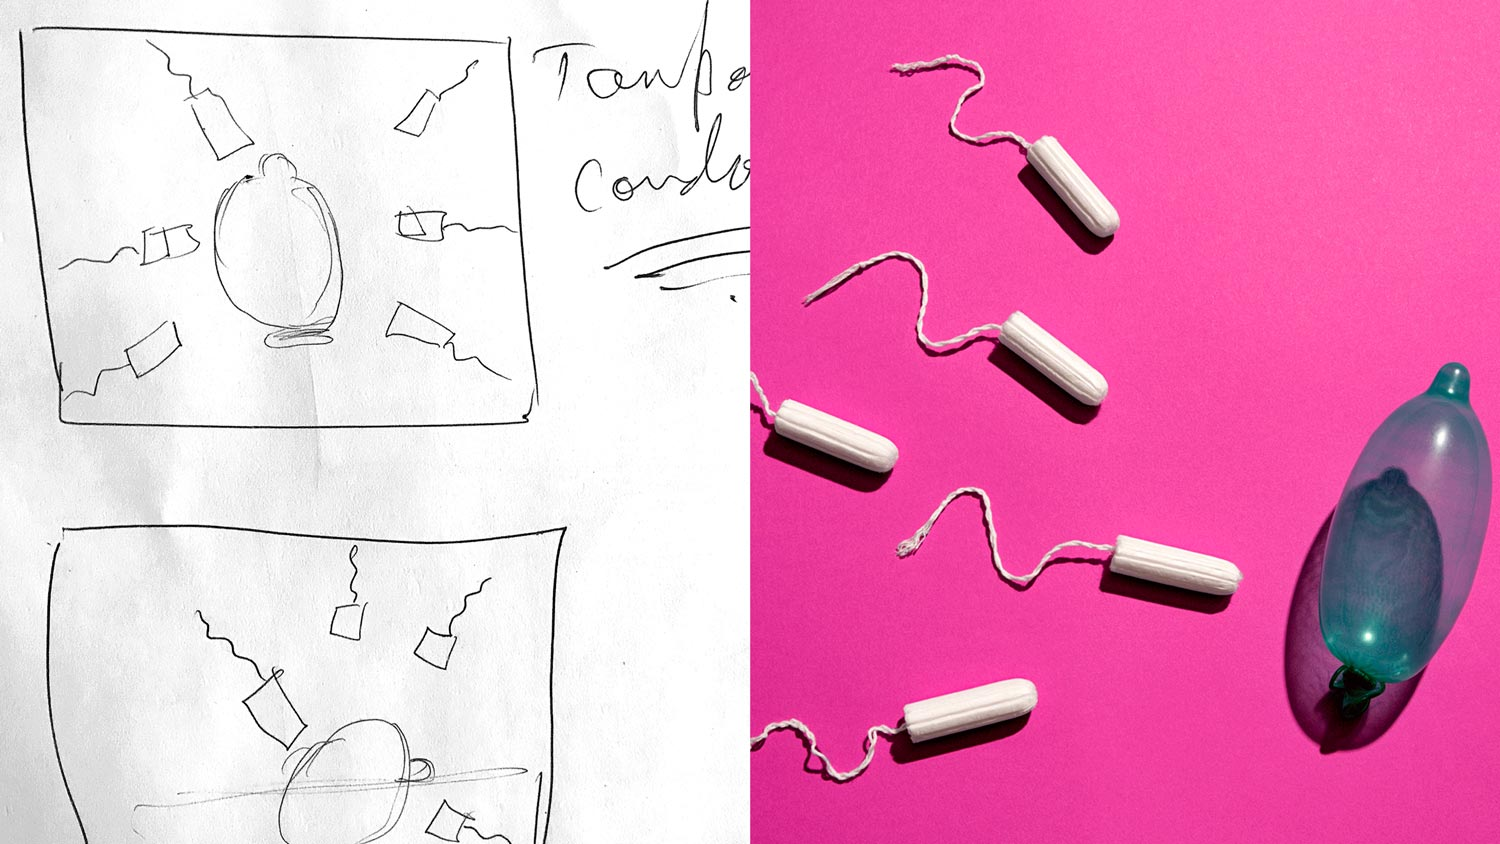 Condoms-Tampons-Sketch